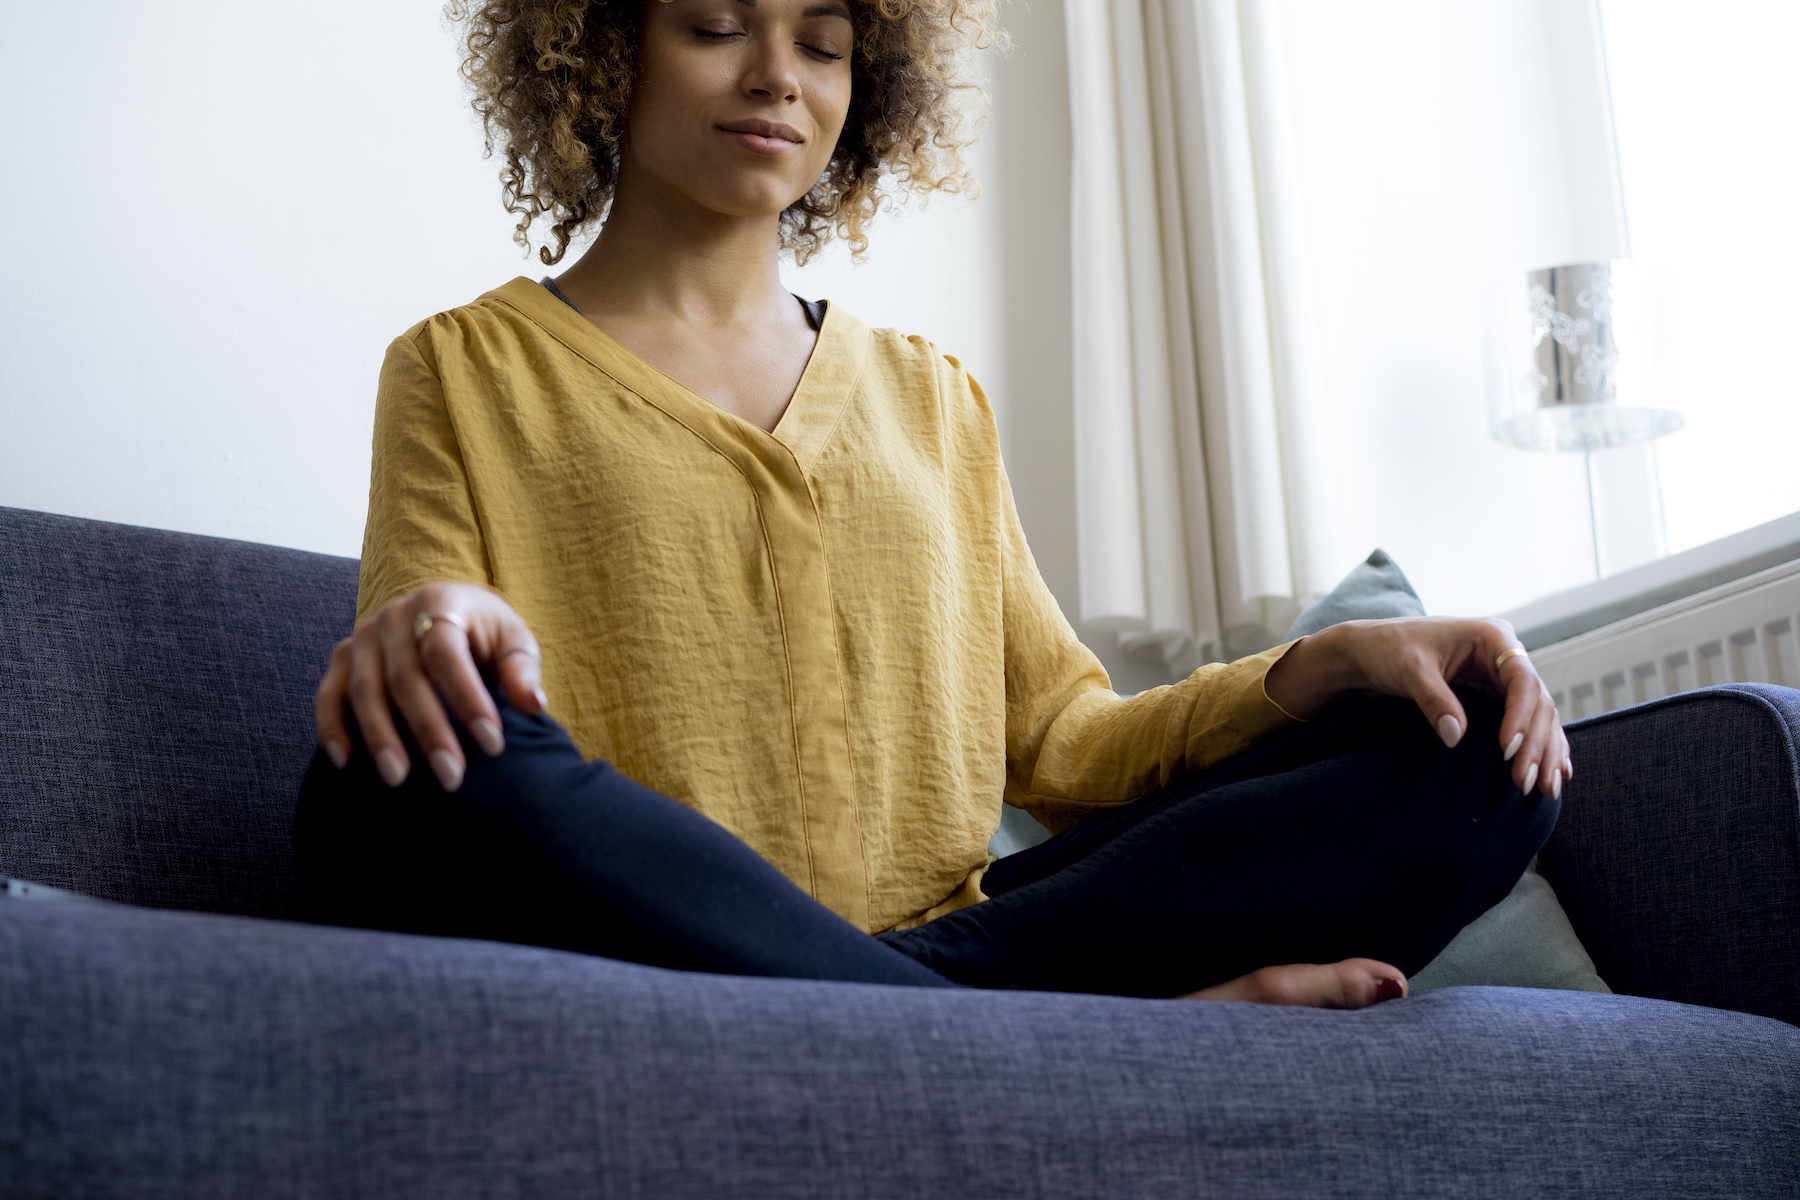 Breathing Exercises for Anxiety, Woman Meditating